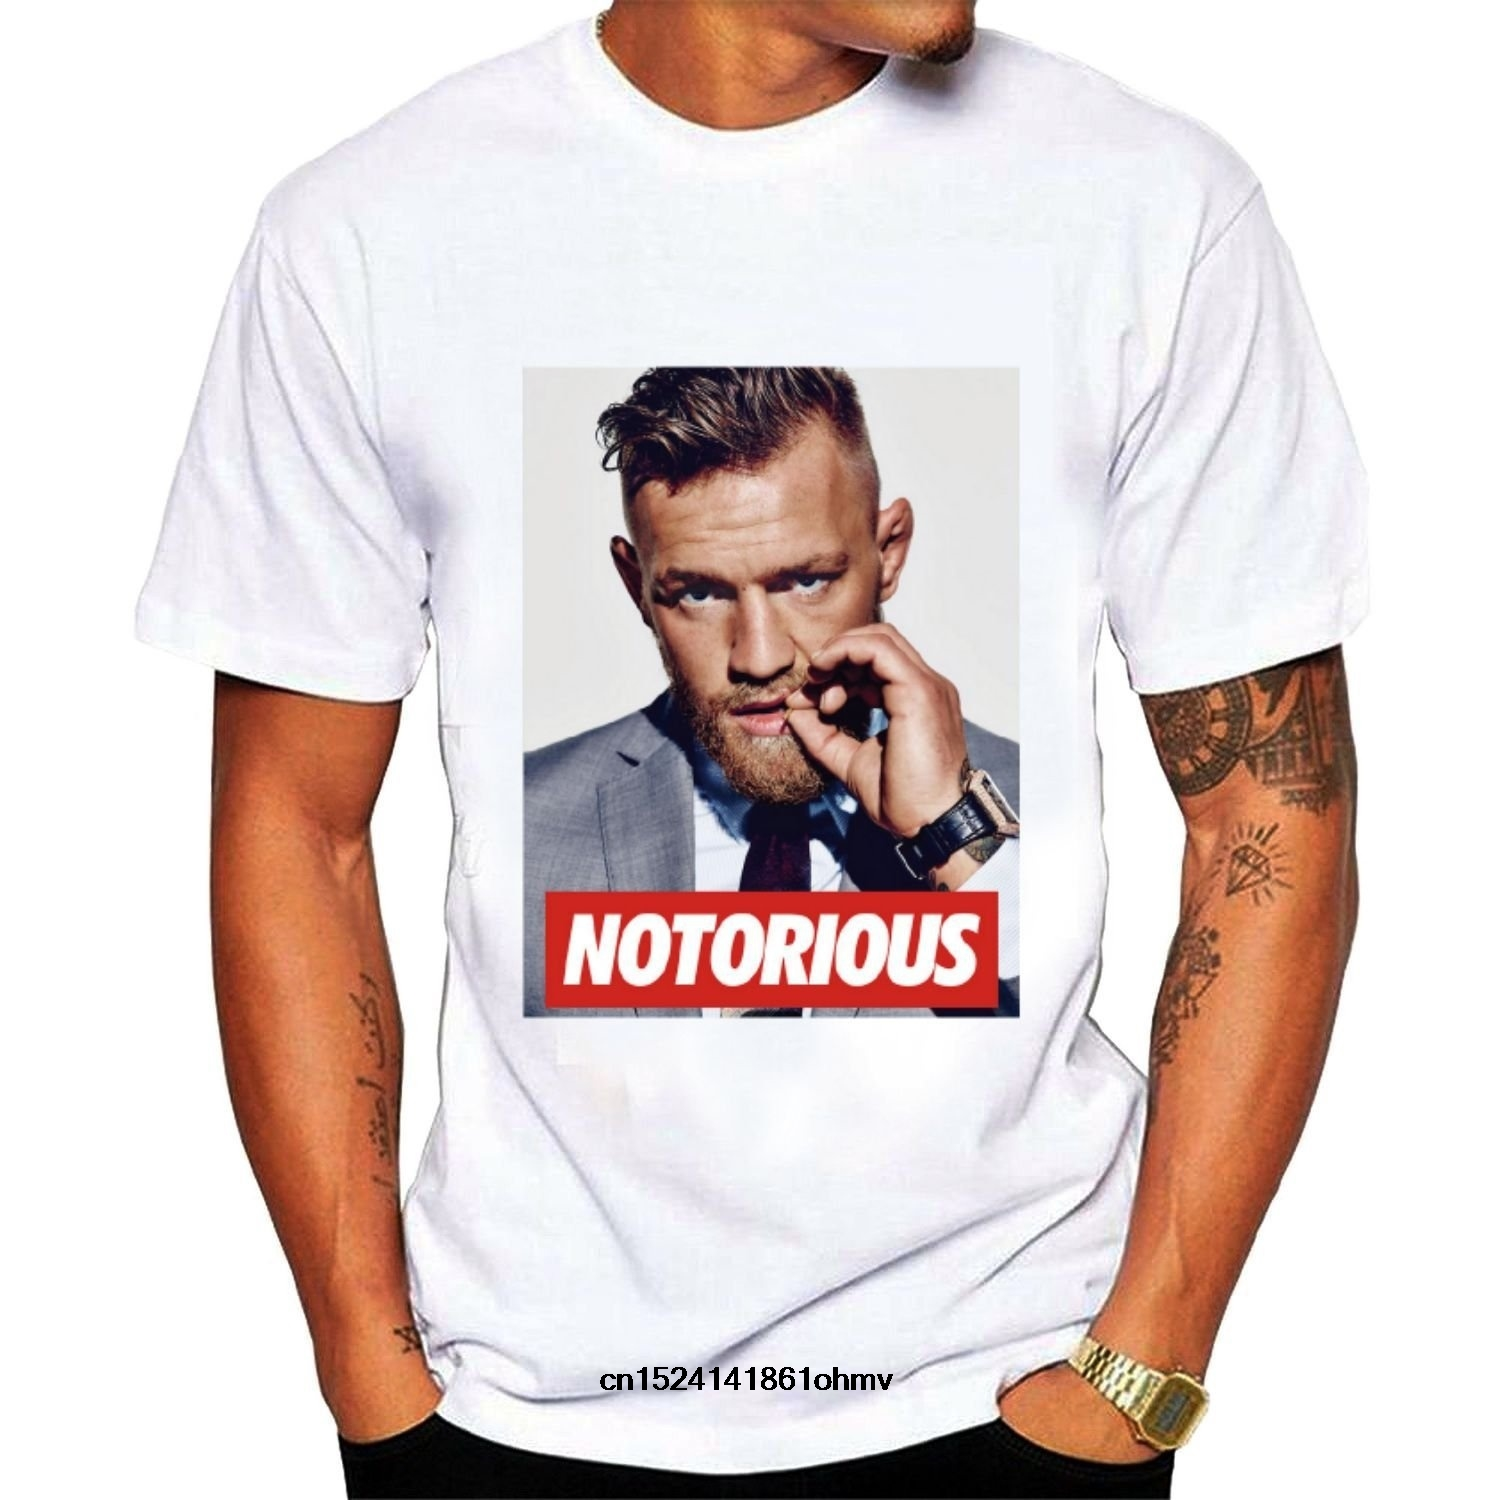 Funny Men T Shirt White T-shirt Tshirts Black Tee Men's Conor Mcgregor Cool Graphic T-shirt Black Curing Cough And Facilitating Expectoration And Relieving Hoarseness